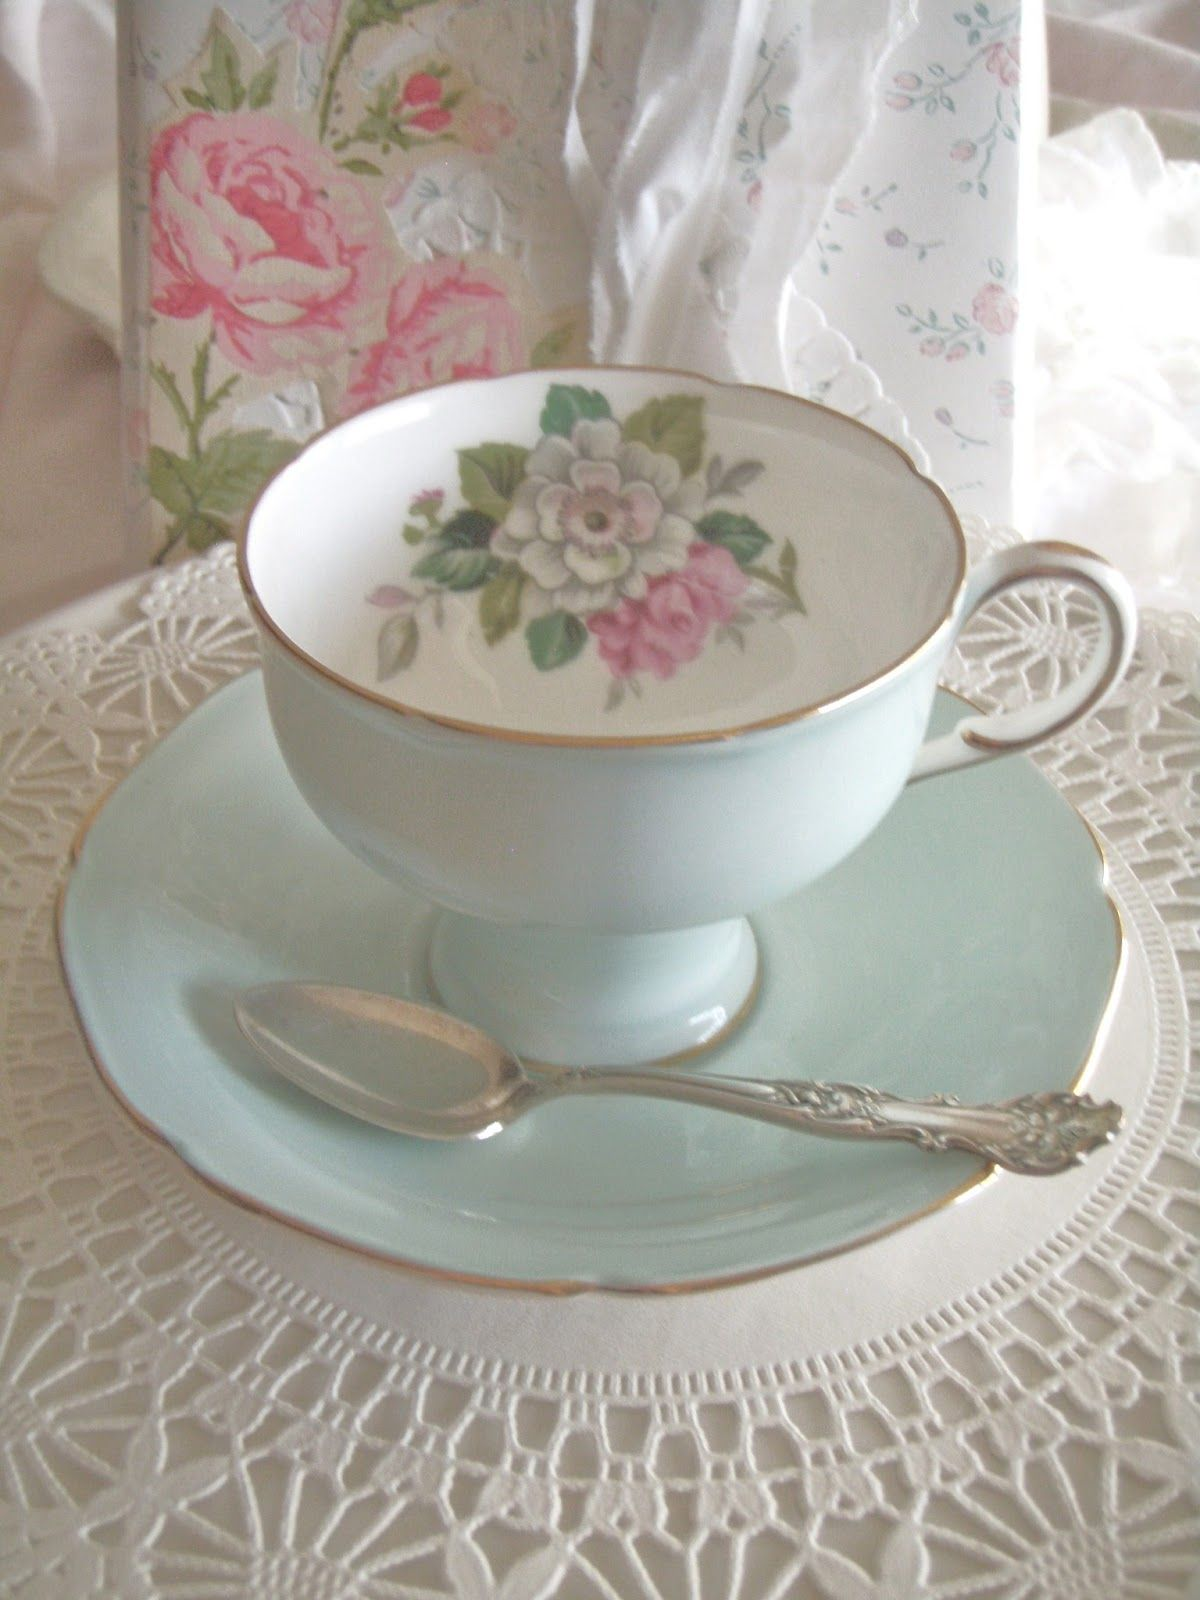 Pin by Lili Brusa on Porcelana Tea cups vintage, Pretty